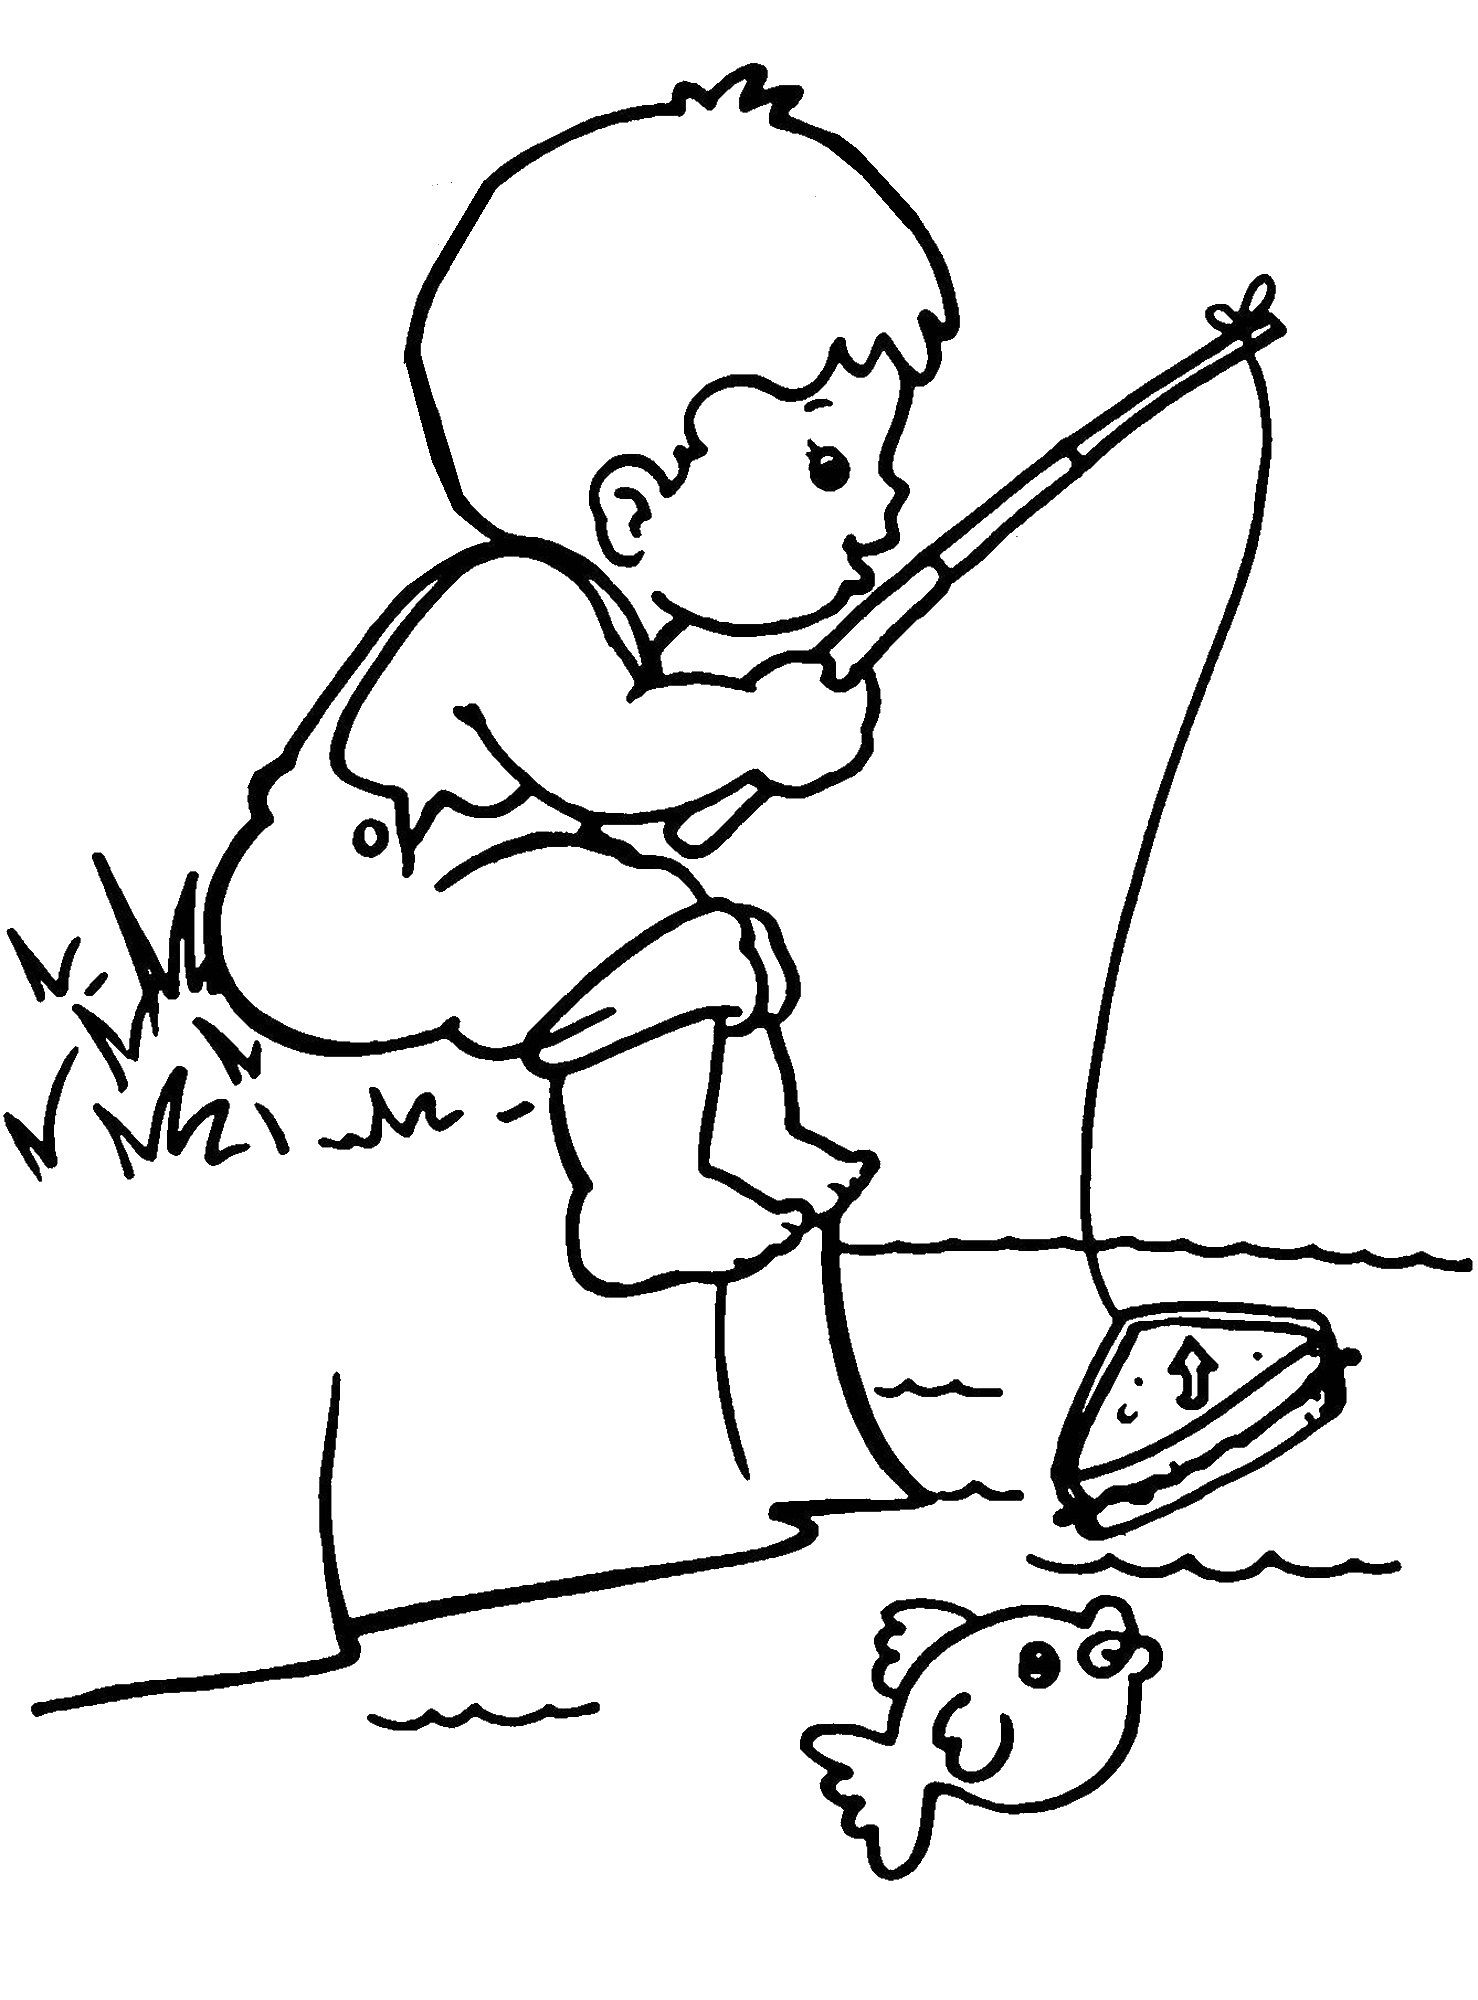 Free Kindergarten Coloring Pictures To Print Learning Printable Sports Coloring Pages Kids Printable Coloring Pages Free Coloring Pictures